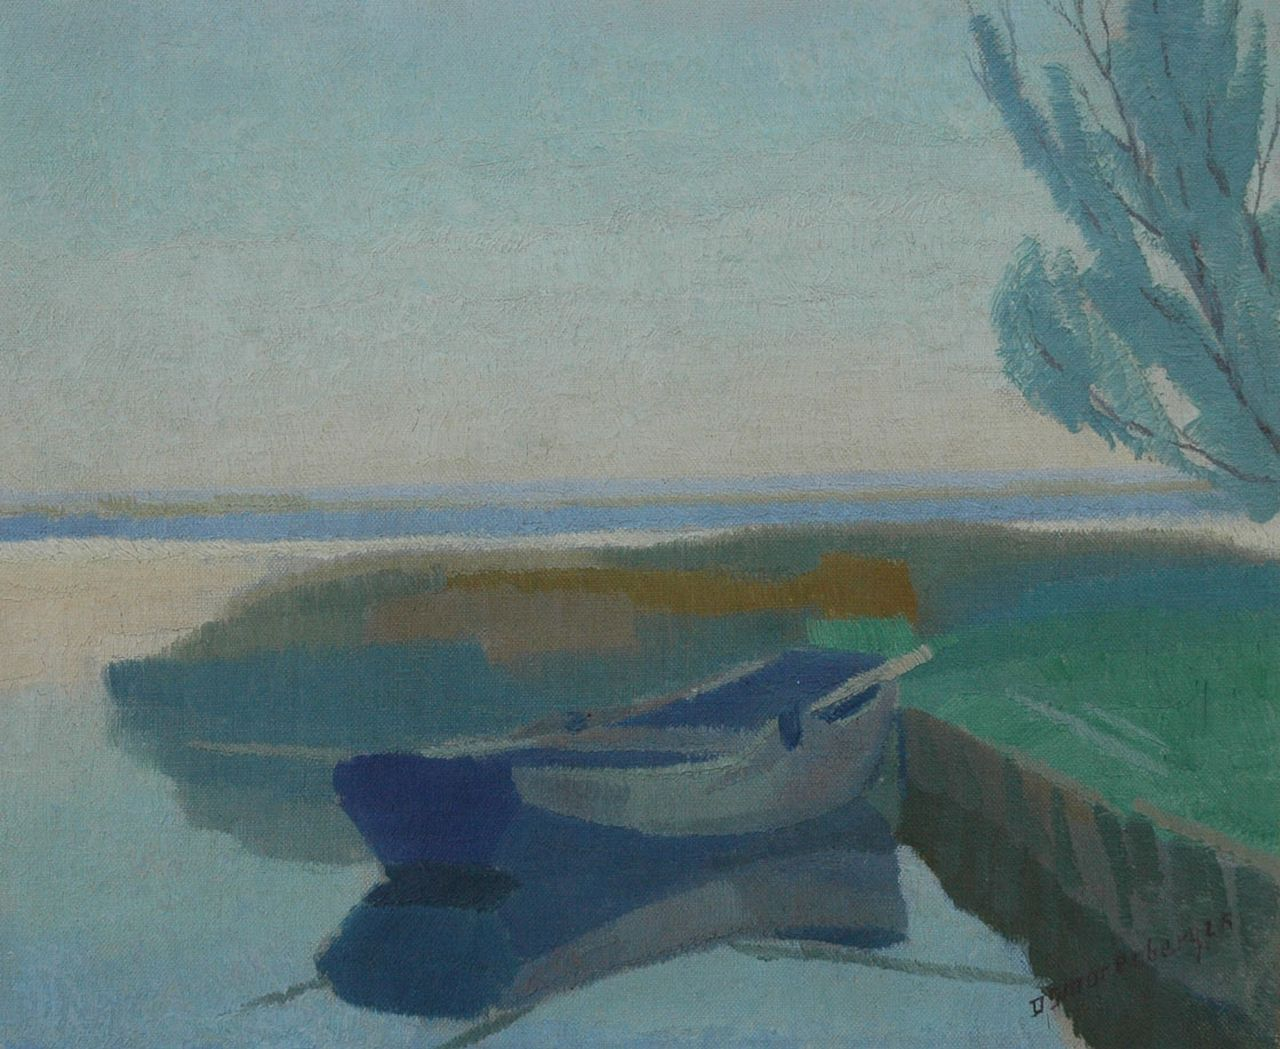 Smorenberg D.  | Dirk Smorenberg, Moored flatboat, oil on canvas 25.5 x 30.6 cm, signed l.r. and painted '25